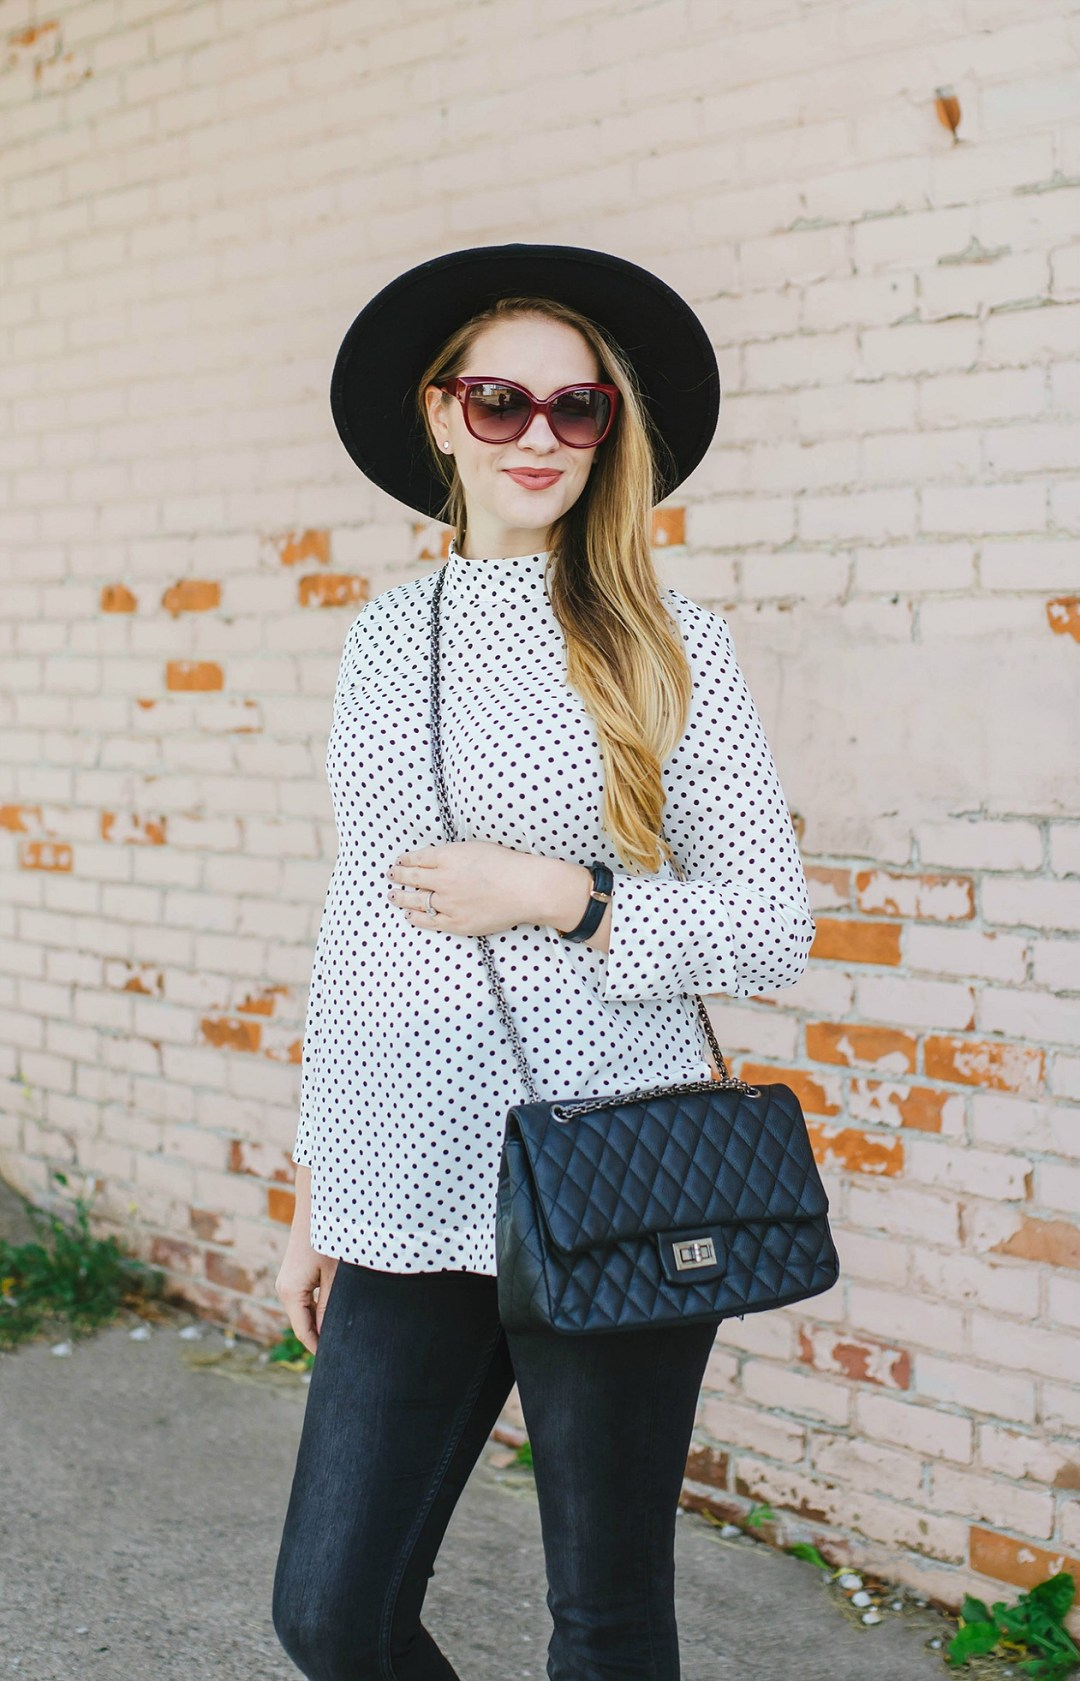 maternity-style-fall-outfit-polka-dots-felt-hat-rose-city-style-guide-amanda-reid-fashion-canadian-blogger-lifestyle